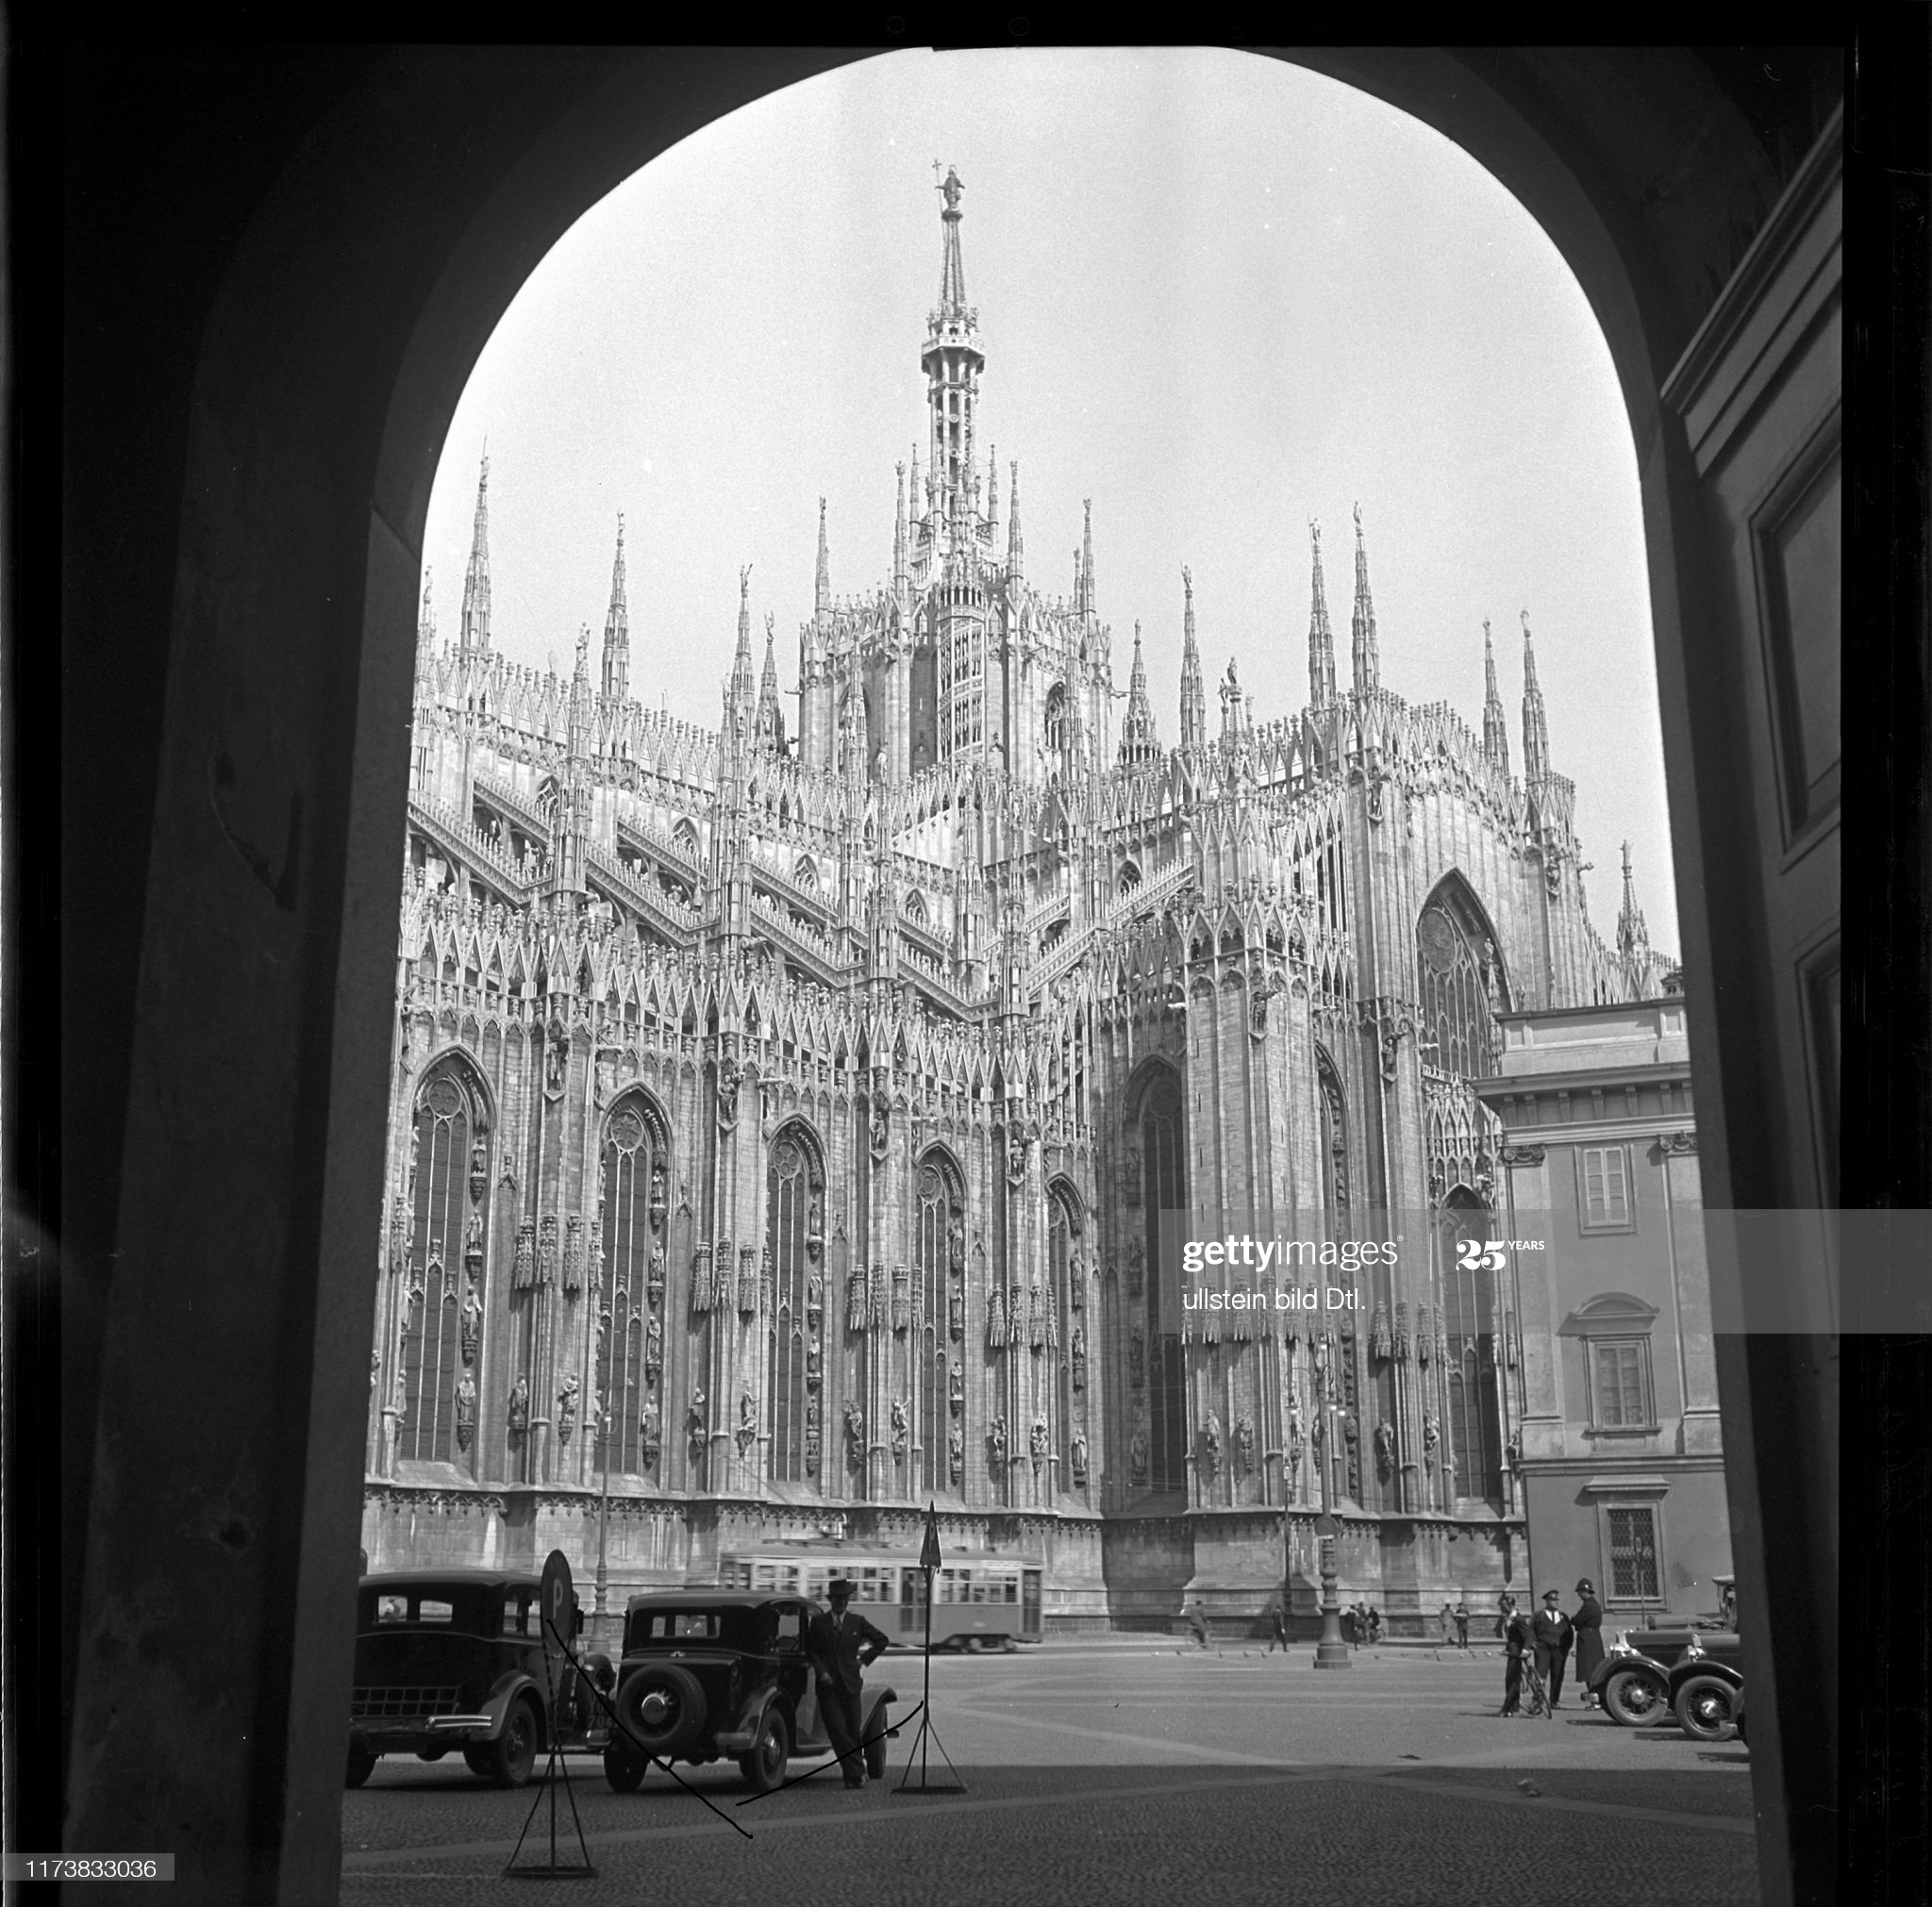 Cathedral Duomo in city of Milan, 1956 (Photo by RDB/ullstein bild via Getty Images)